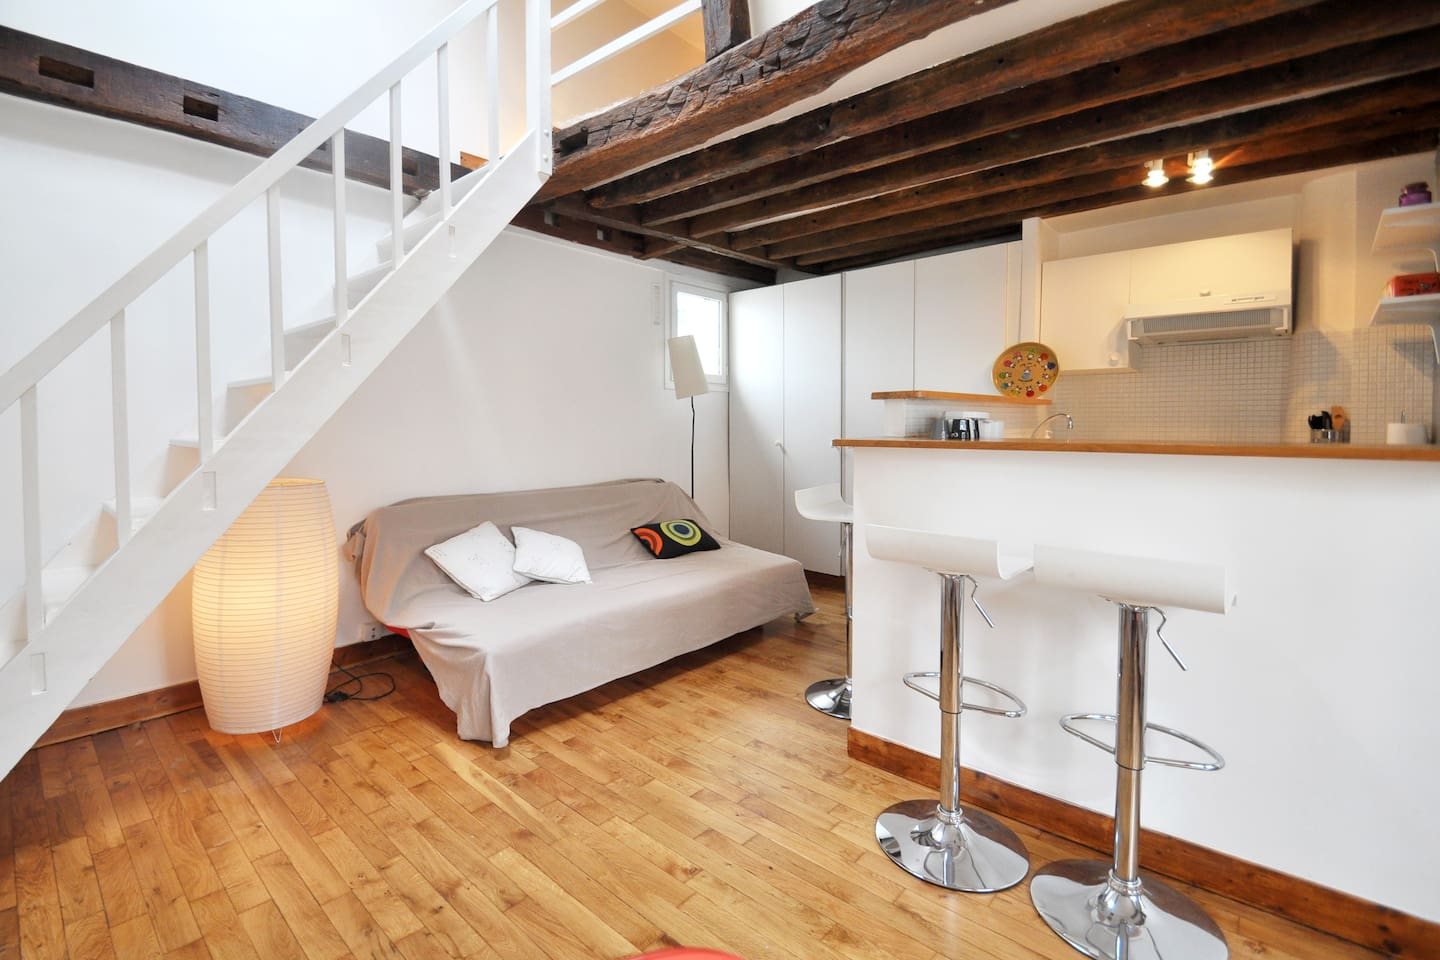 The stairs bring you to the cosy sleeping area in the attic. The sofa is a bed as well. The bar and the open kitchen